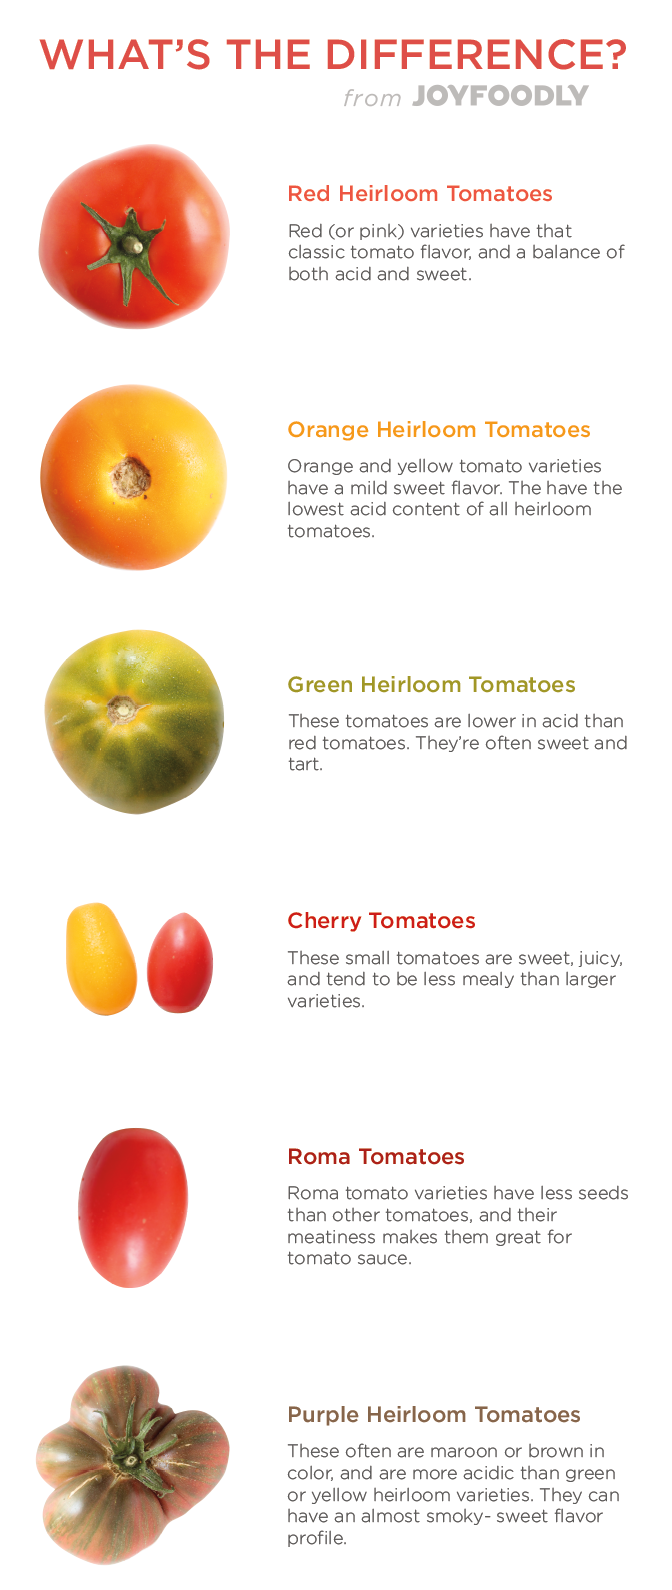 Source: http://www.joyfoodly.com/?s=tomatoes